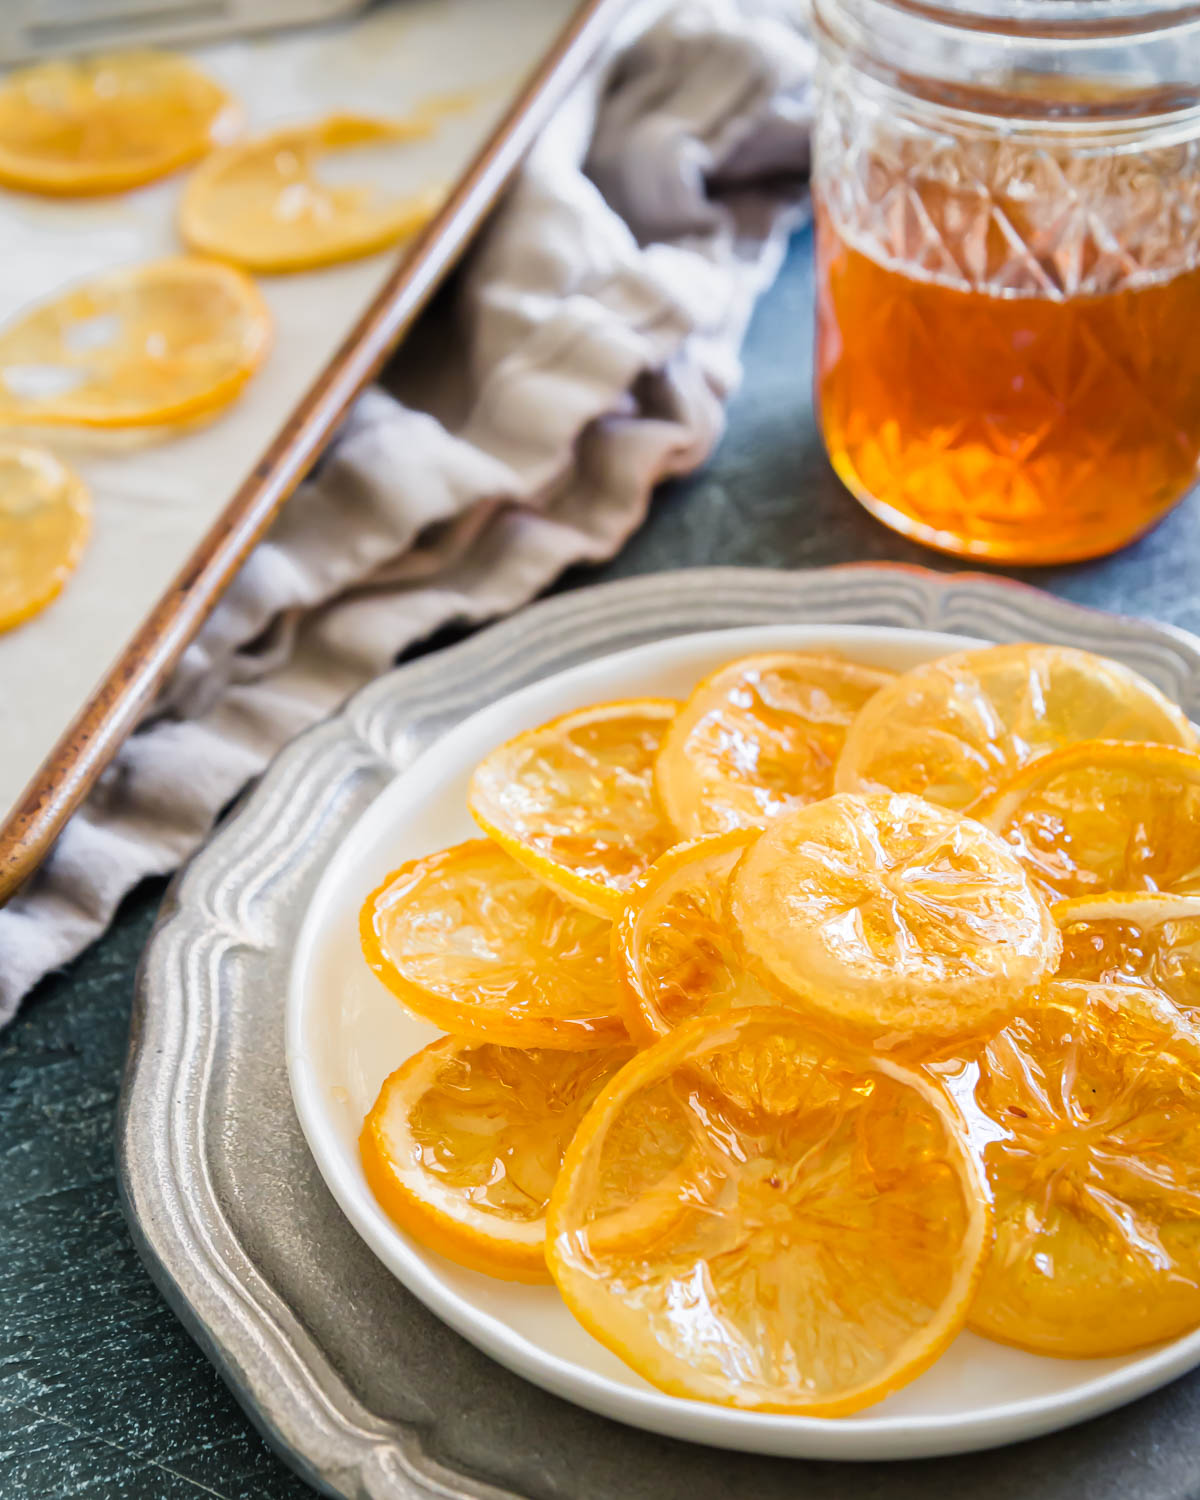 Learn how to easily make candied lemon slices with just 3 ingredients. This simple method can be applied to any citrus fruit.